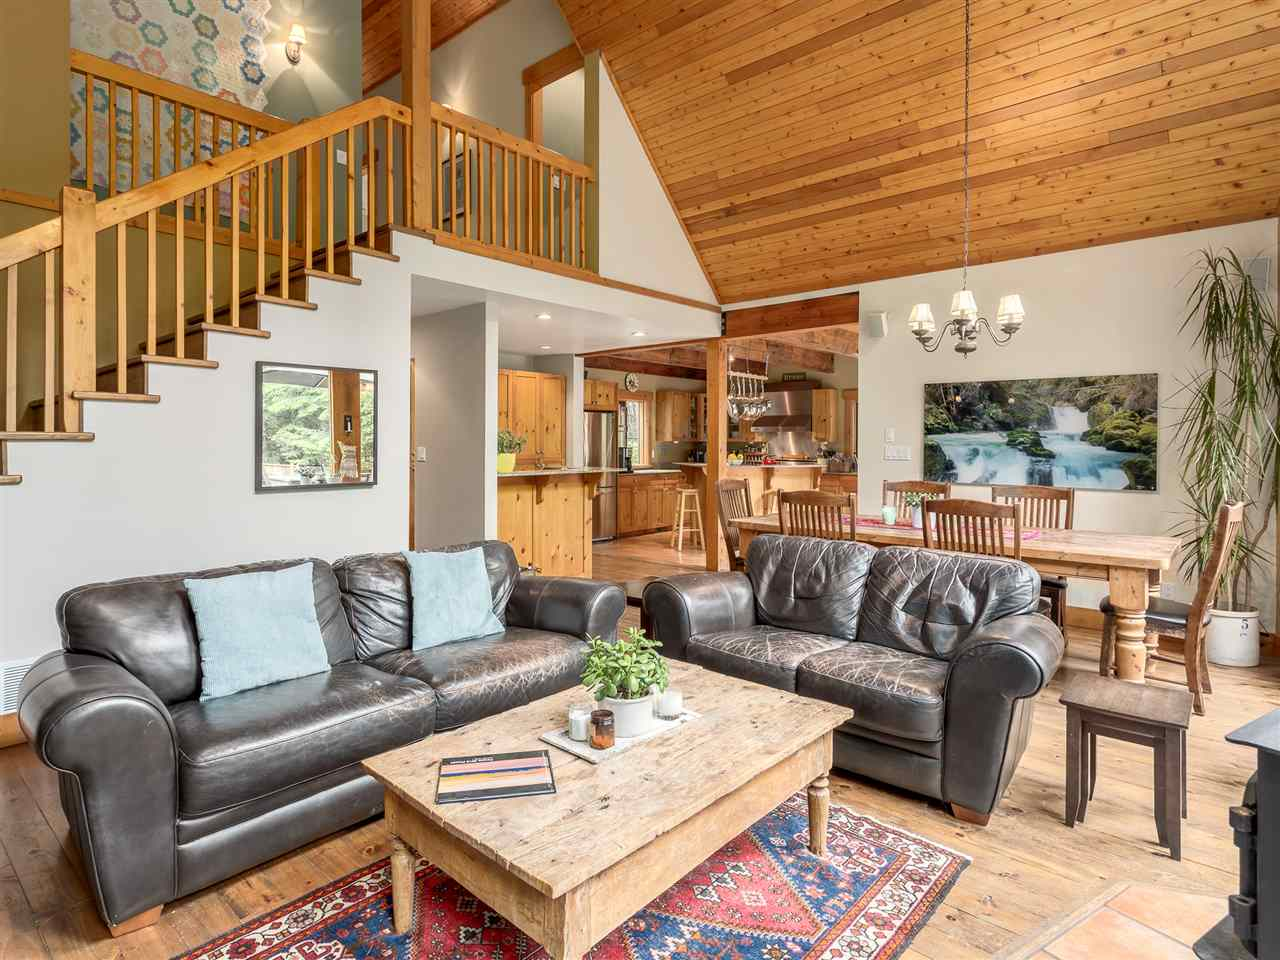 Photo 3: 2601 THE Boulevard in Squamish: Garibaldi Highlands House for sale : MLS® # R2176534